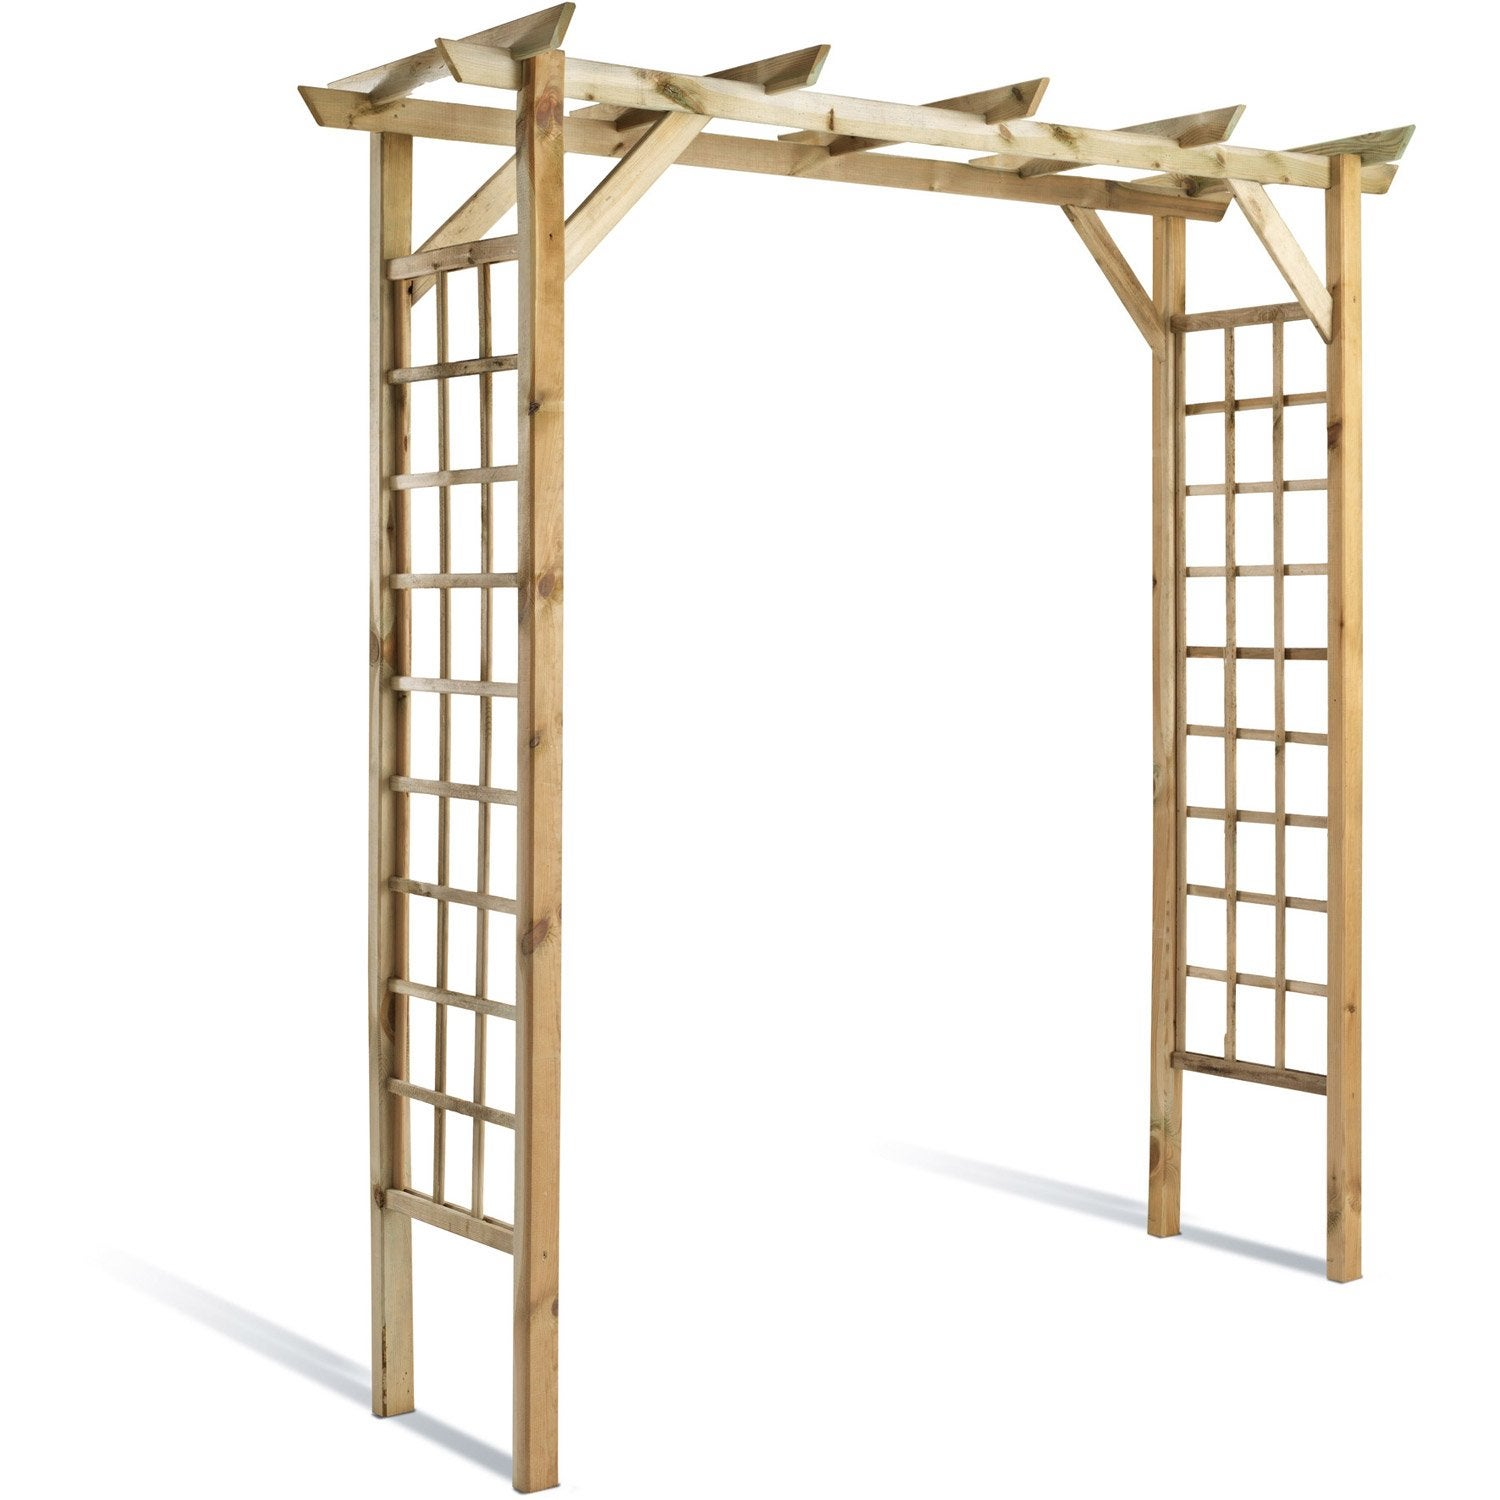 Garage pergola design penmie bee - Garage bois leroy merlin ...